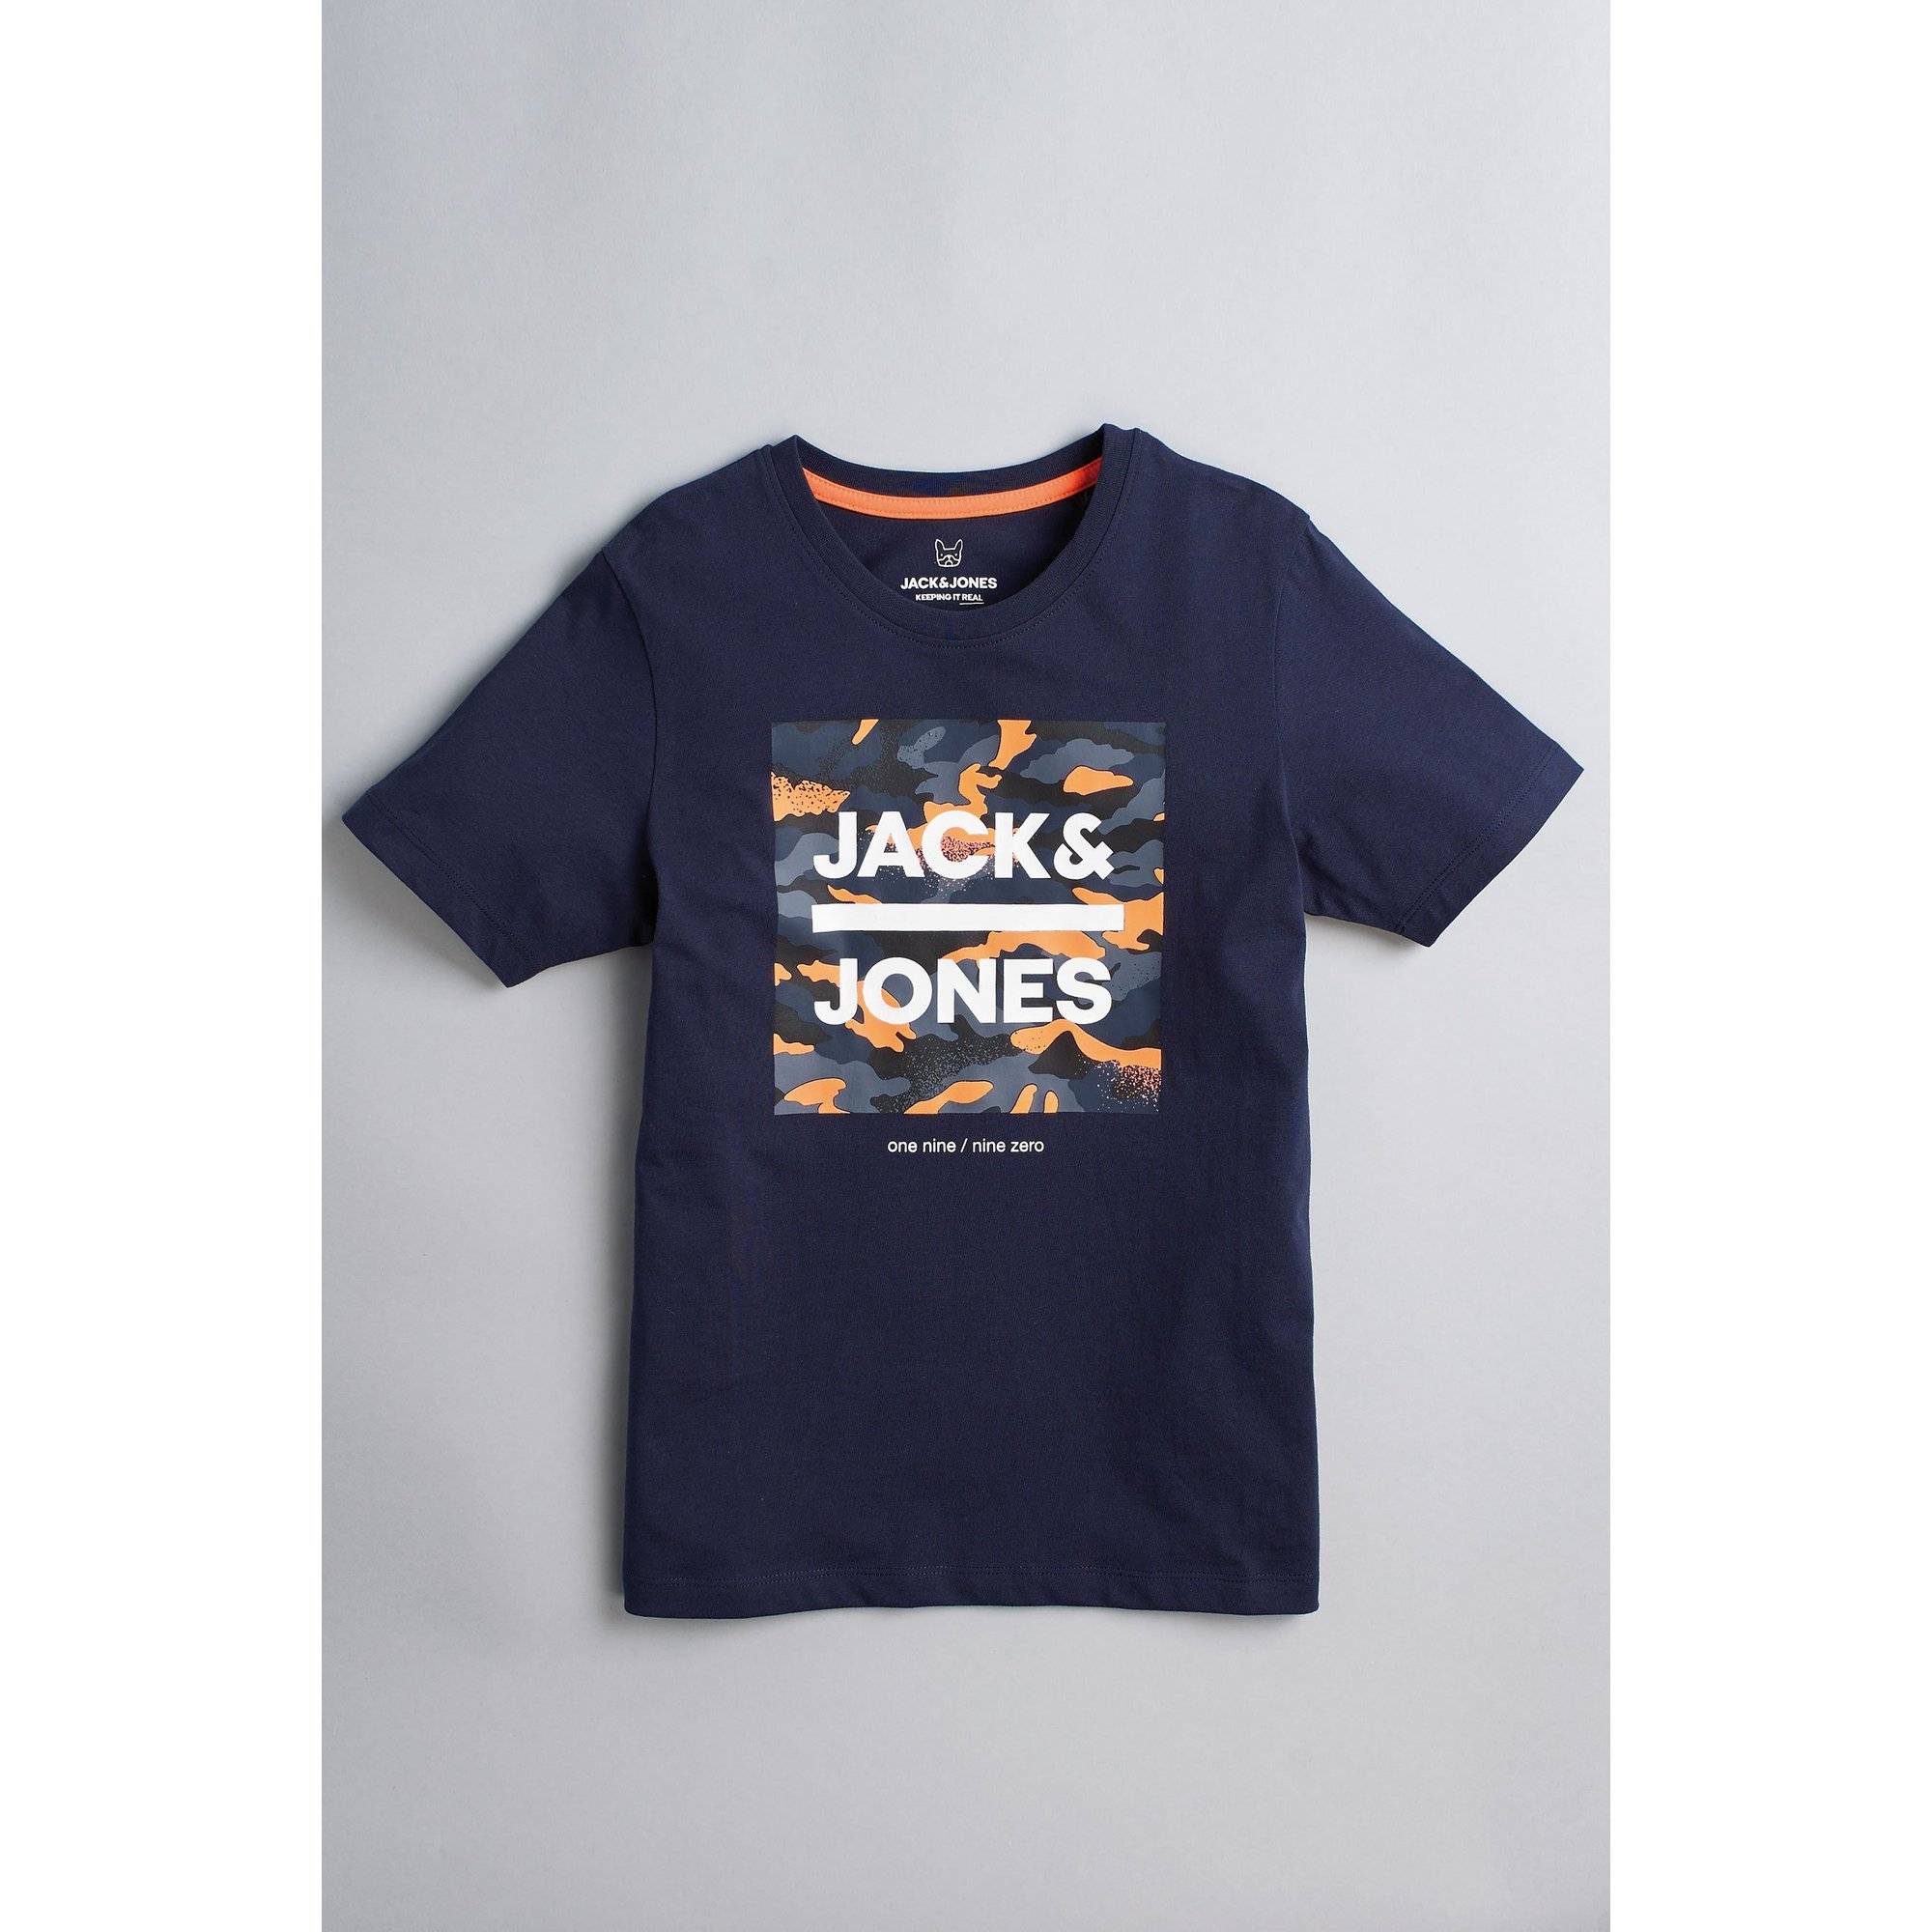 Image of Boys Jack and Jones Navy T-Shirt